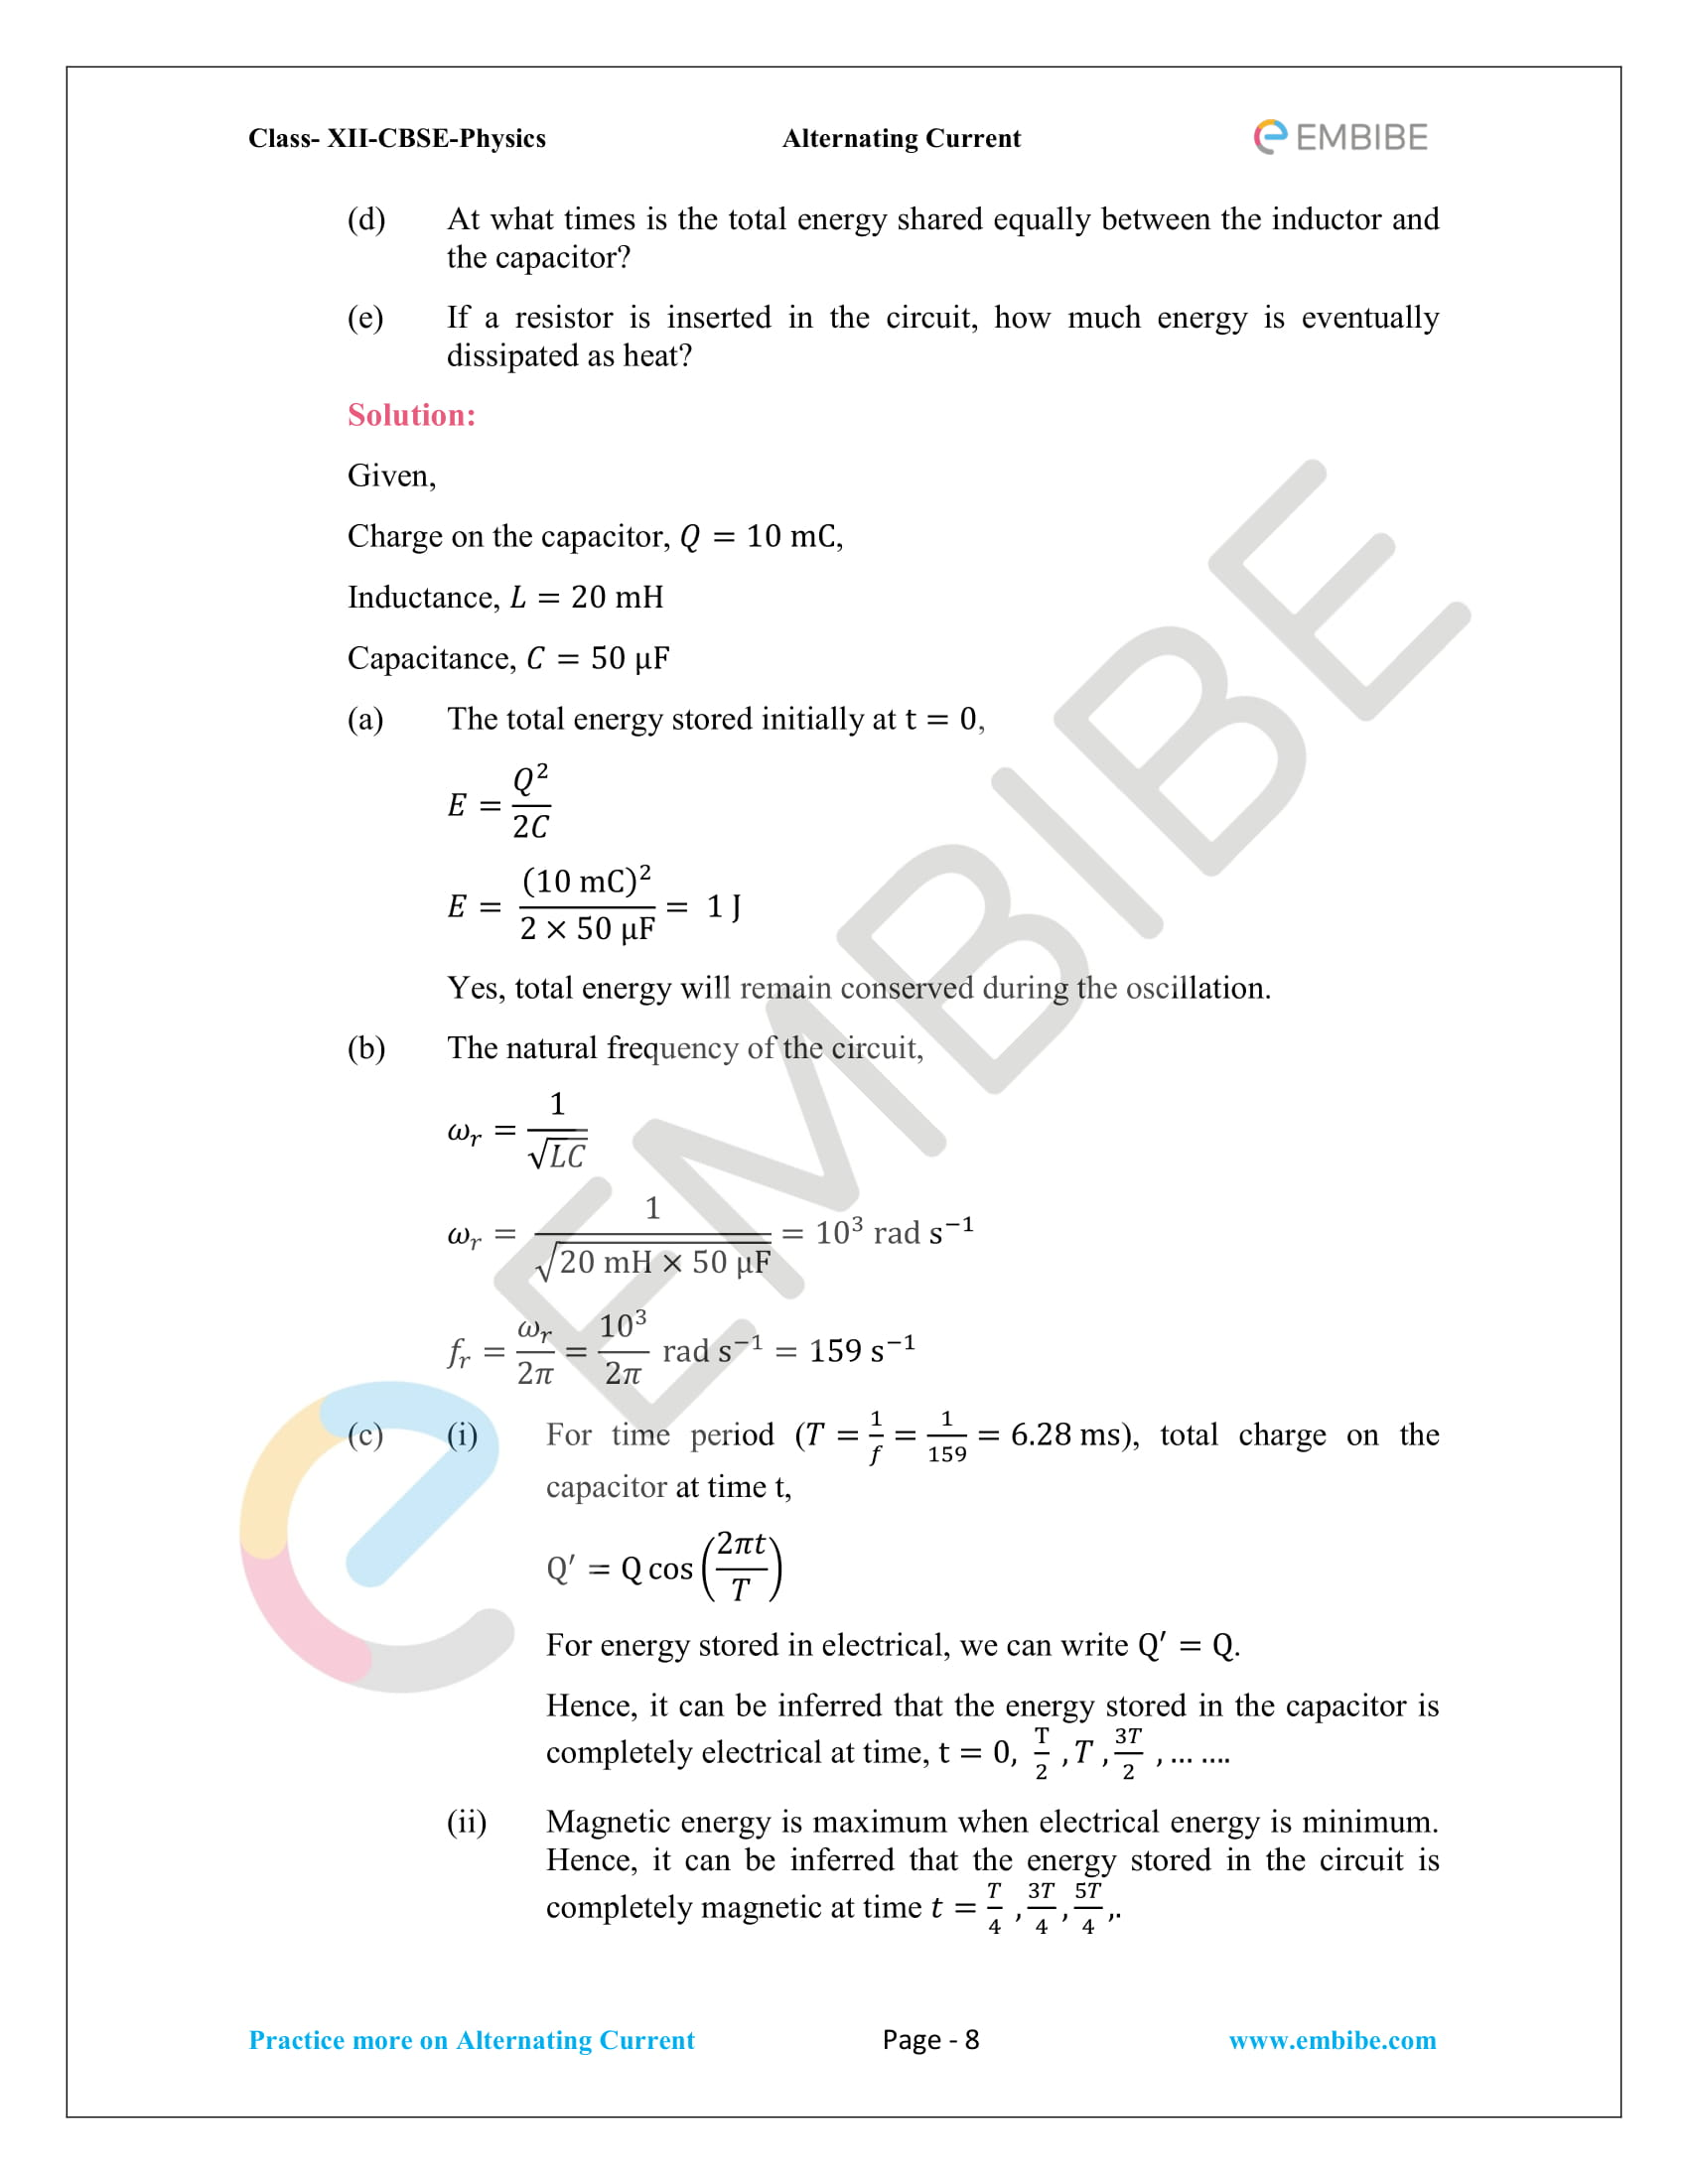 NCERT Solutions for Class 12 Chapter 7 Alternating Current-08